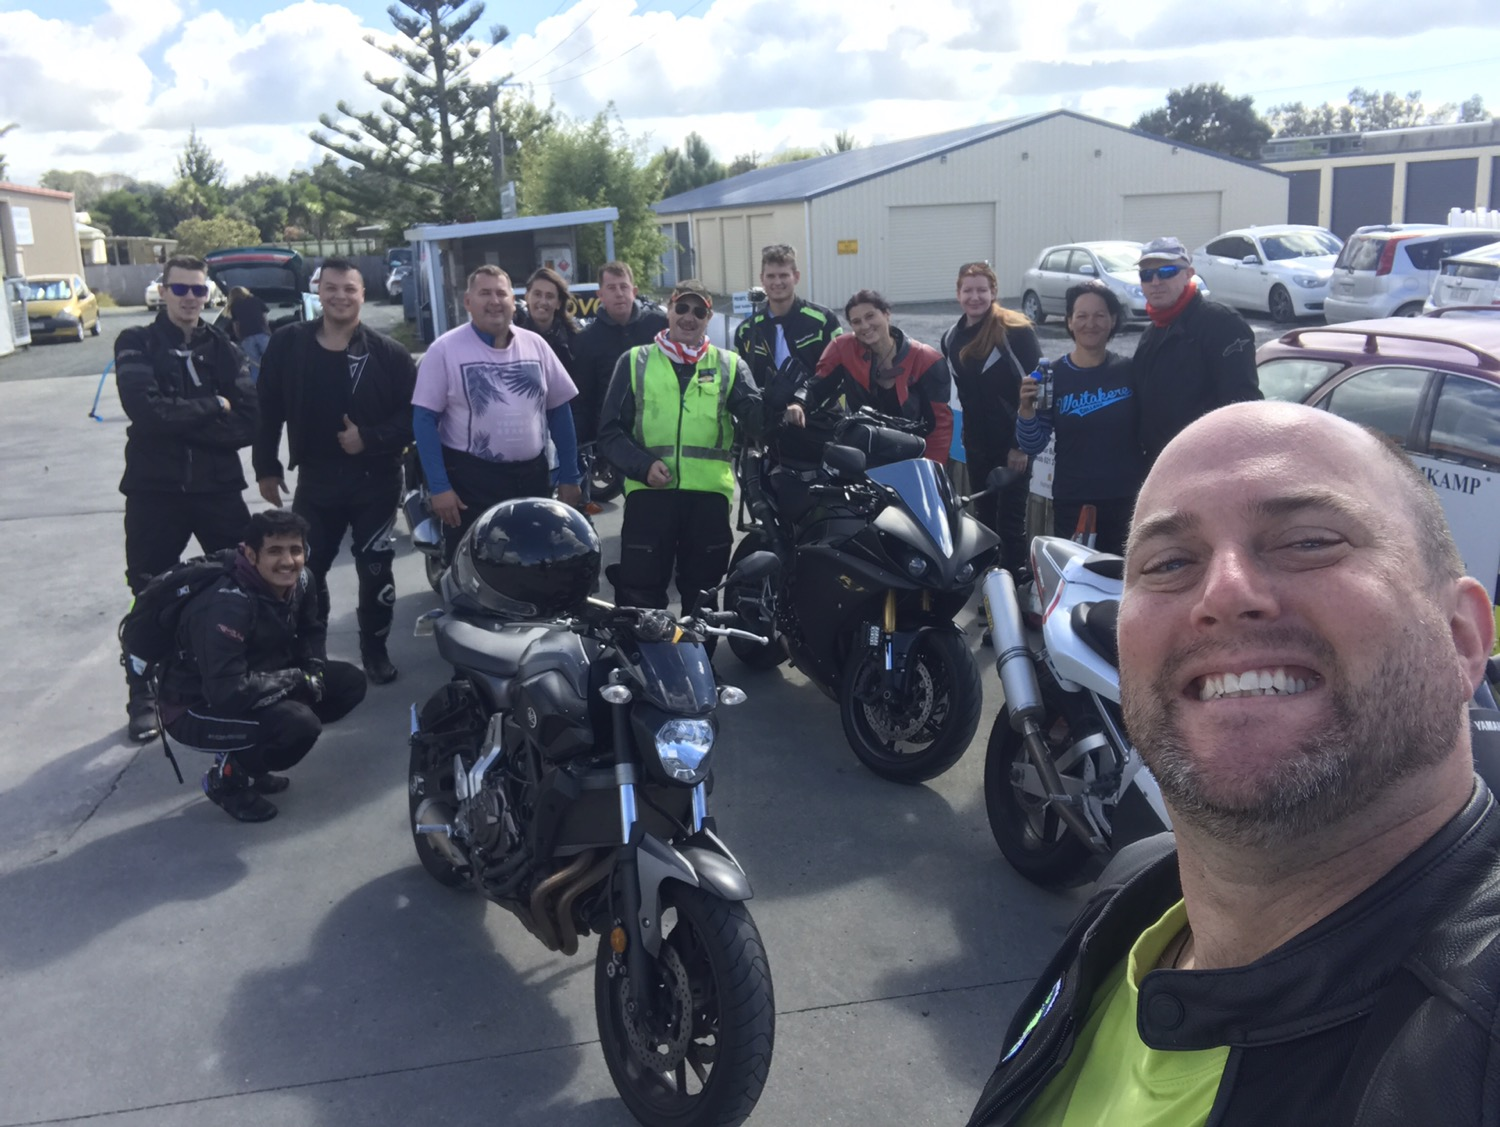 Motorcycle Riders Group - Ride to Waipu - 17 Apr 2017